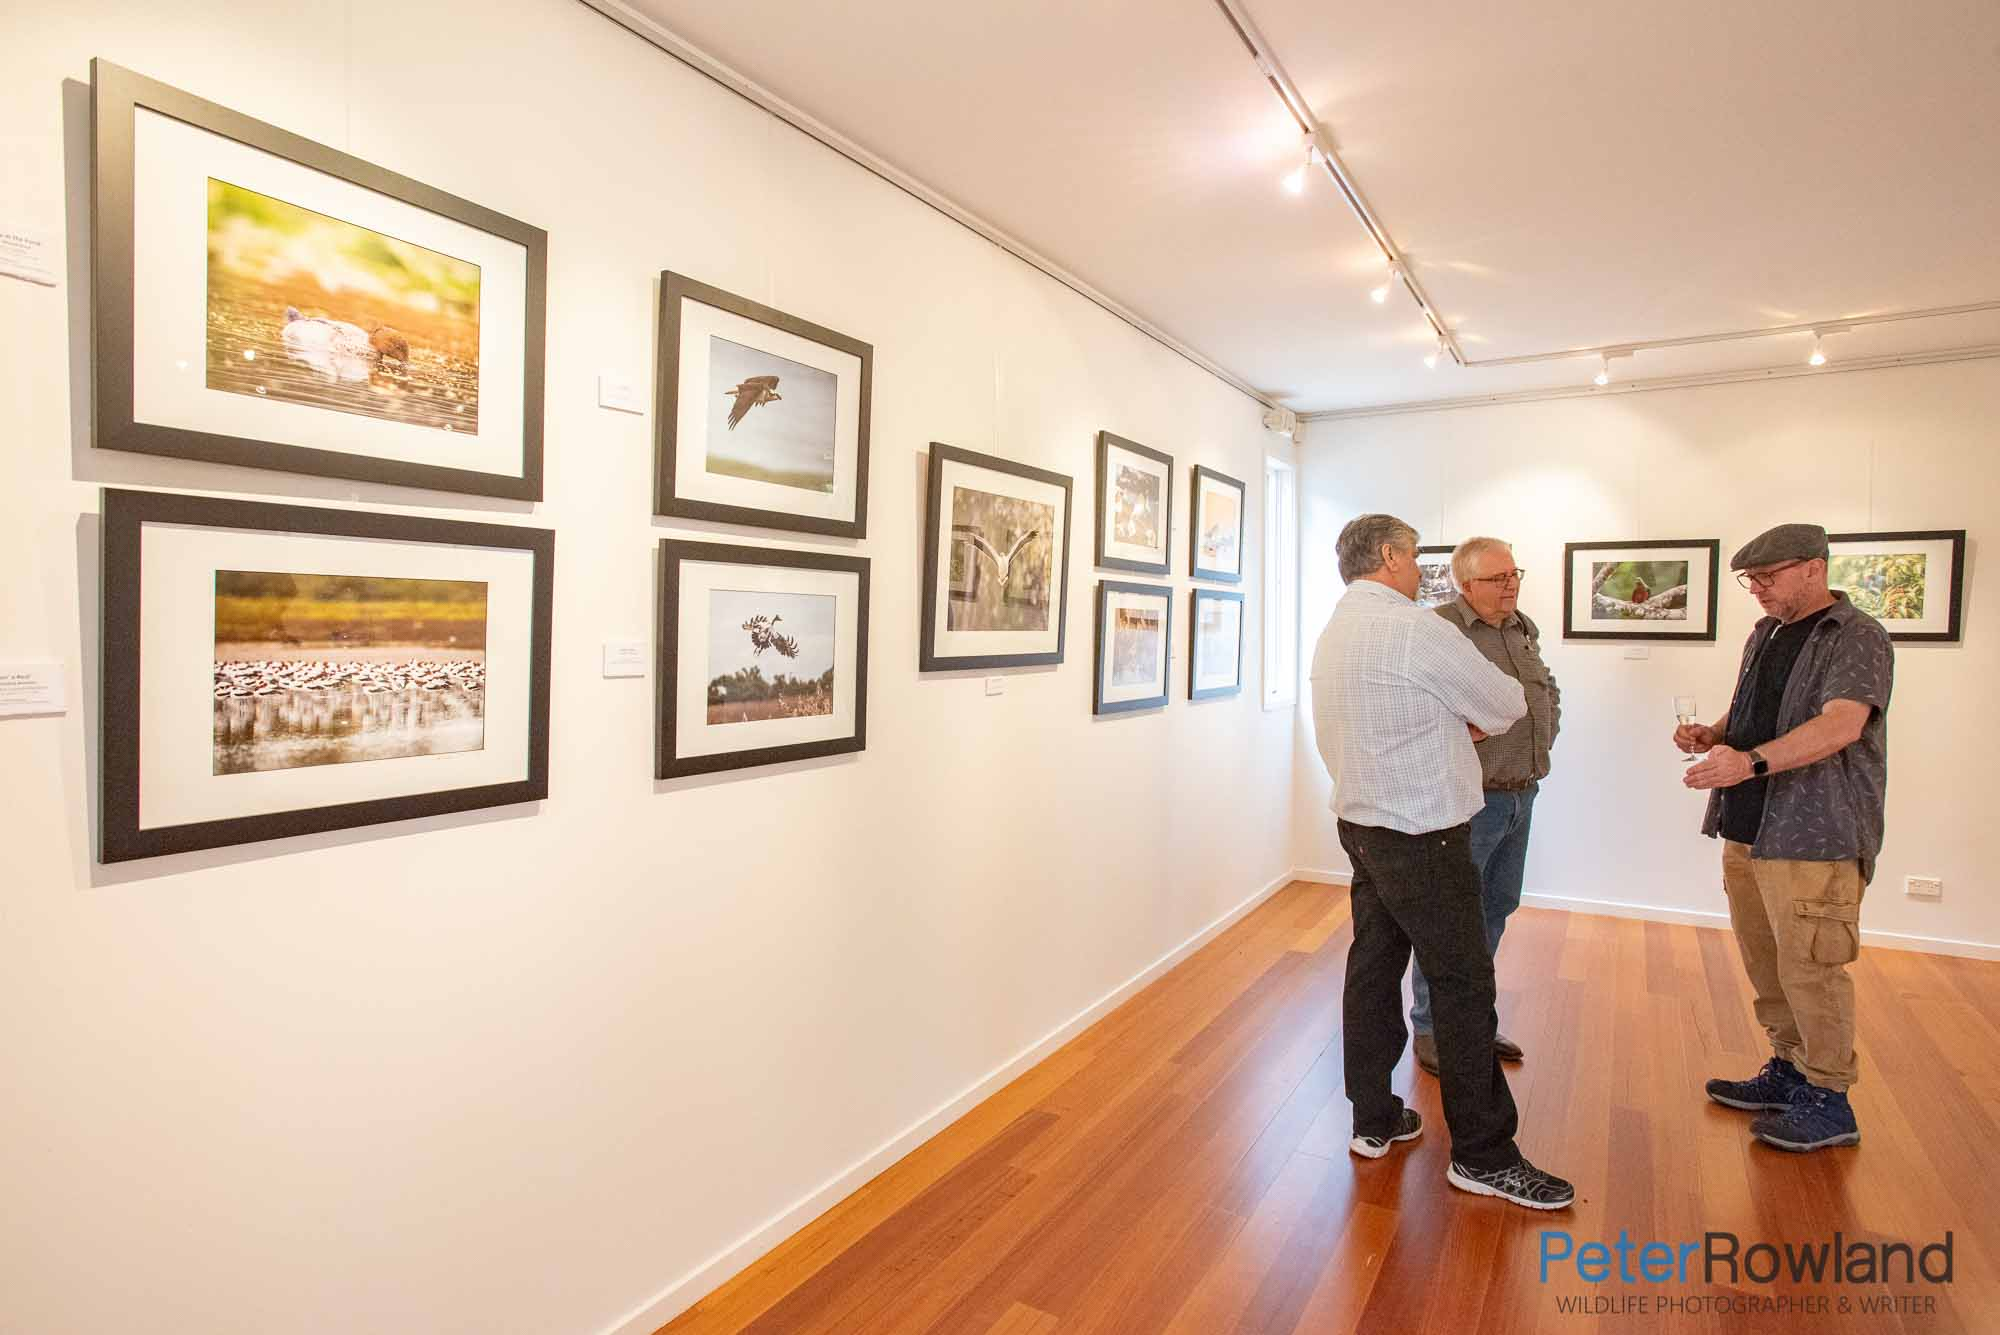 Peter Rowland talking to two men at photographic exhibition